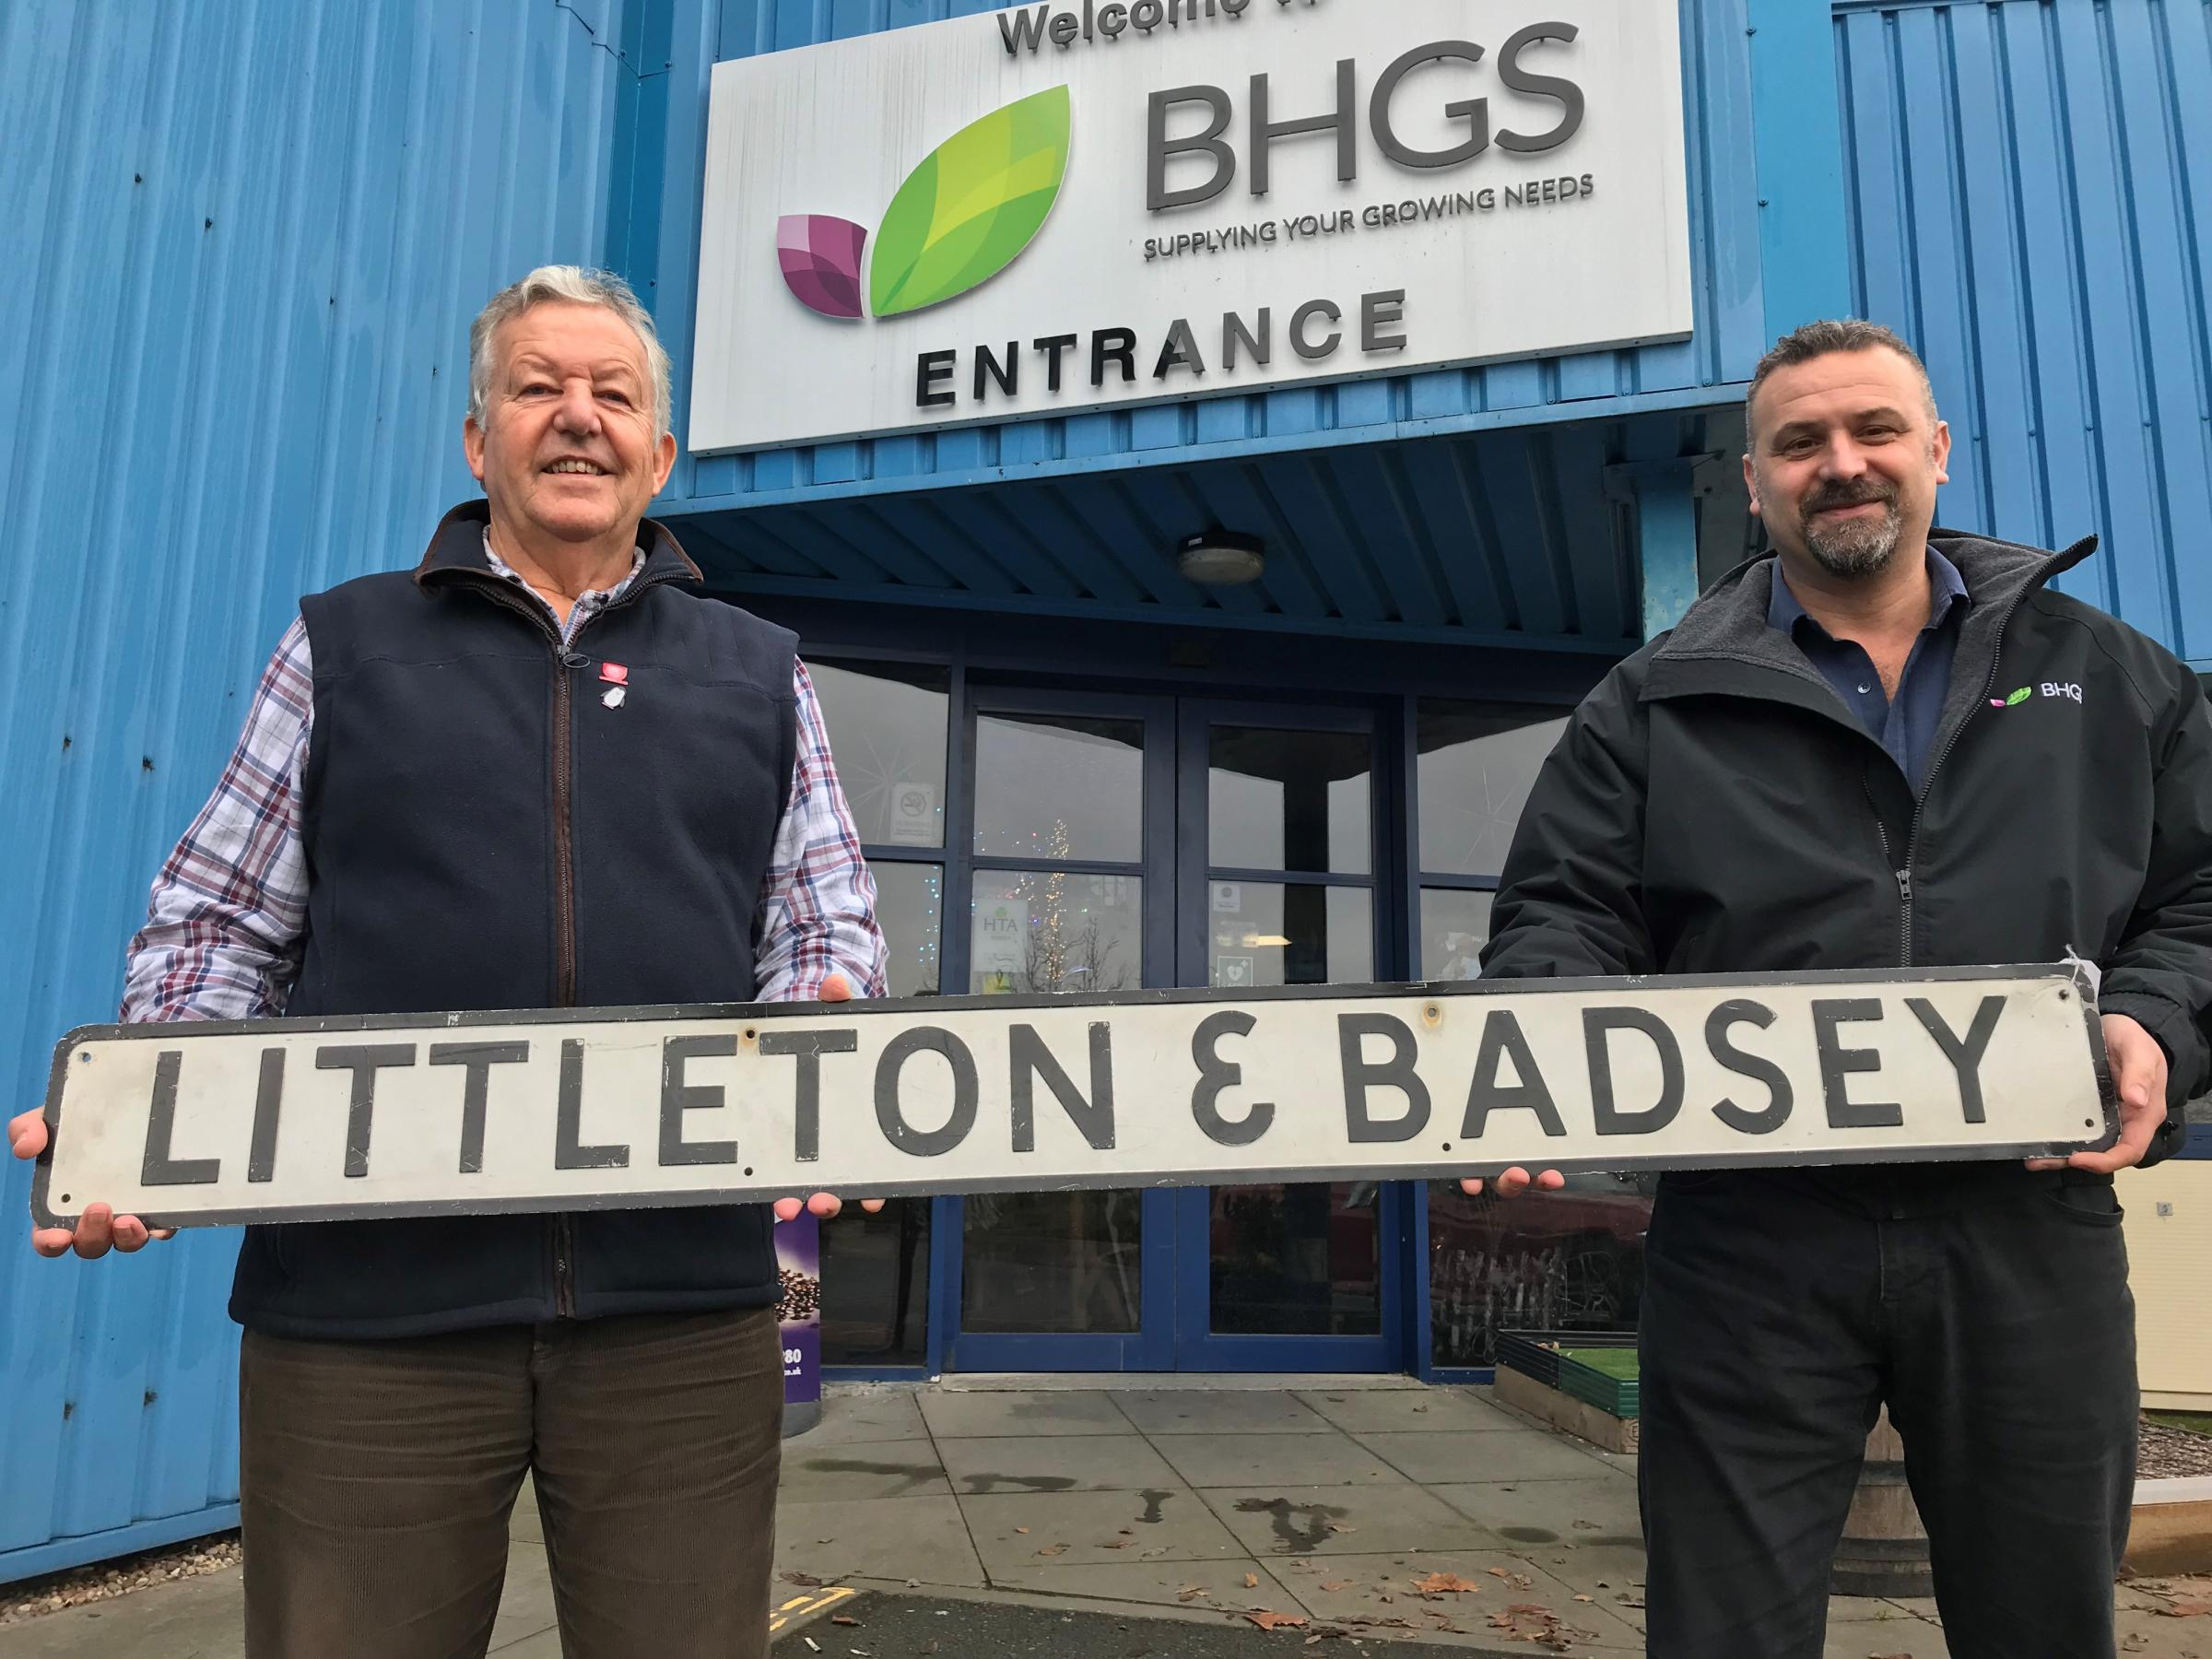 Littleton & Badsey signal box sign returns home after railwayana auction